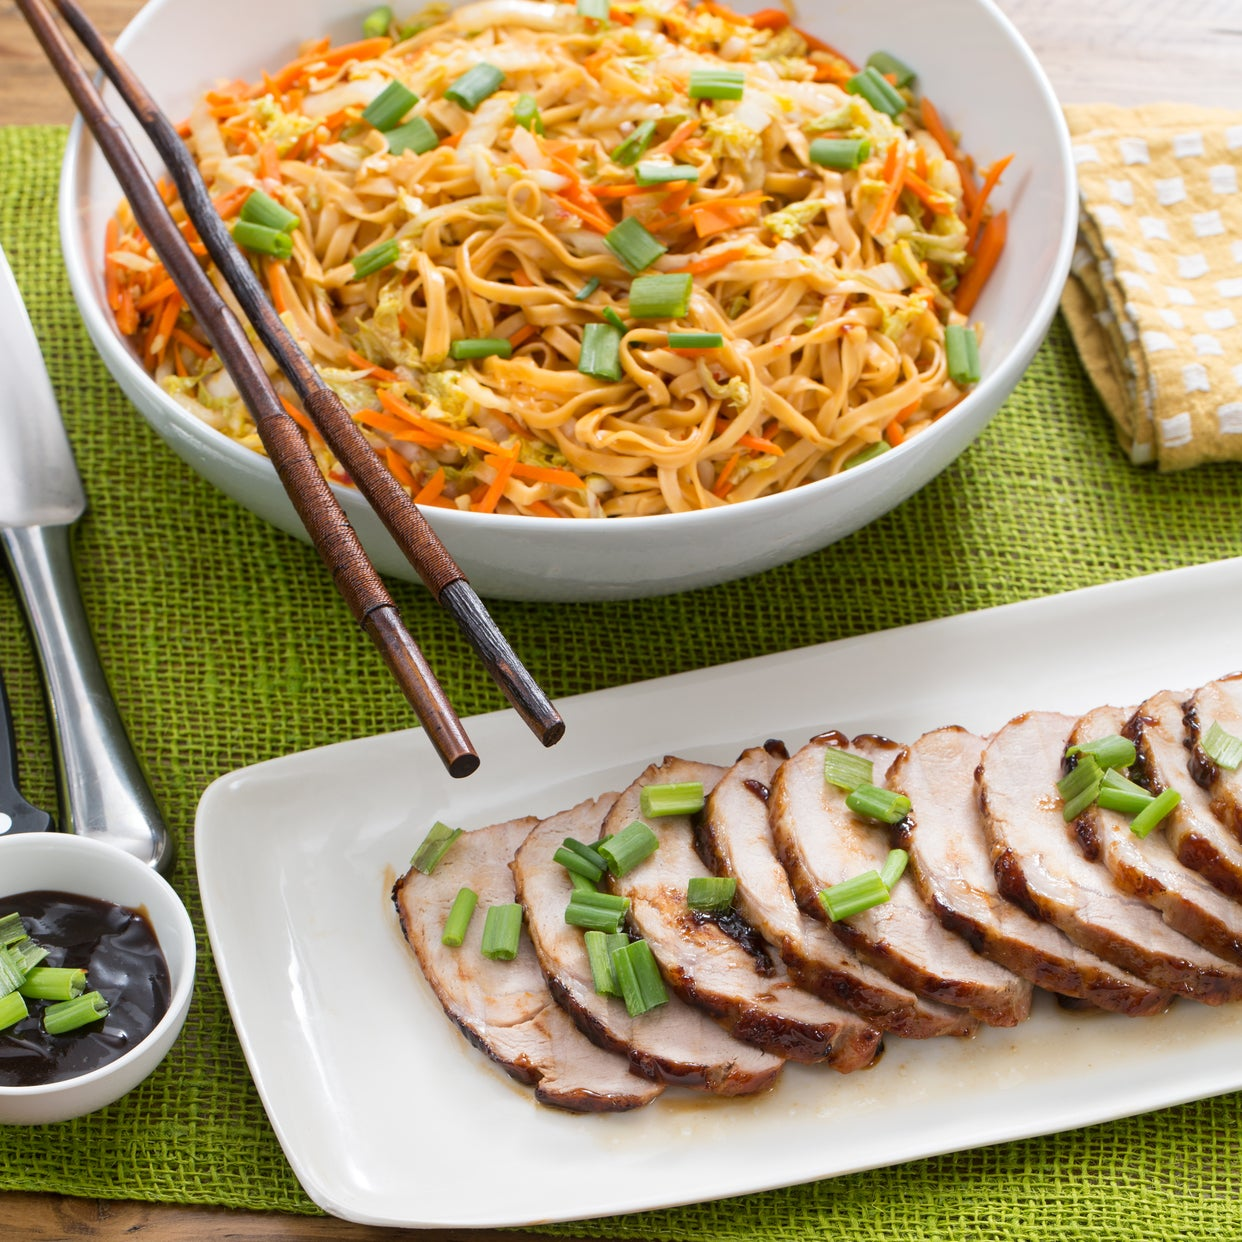 Hoisin-Glazed Roast Pork with Stir-Fried Peanut Noodles